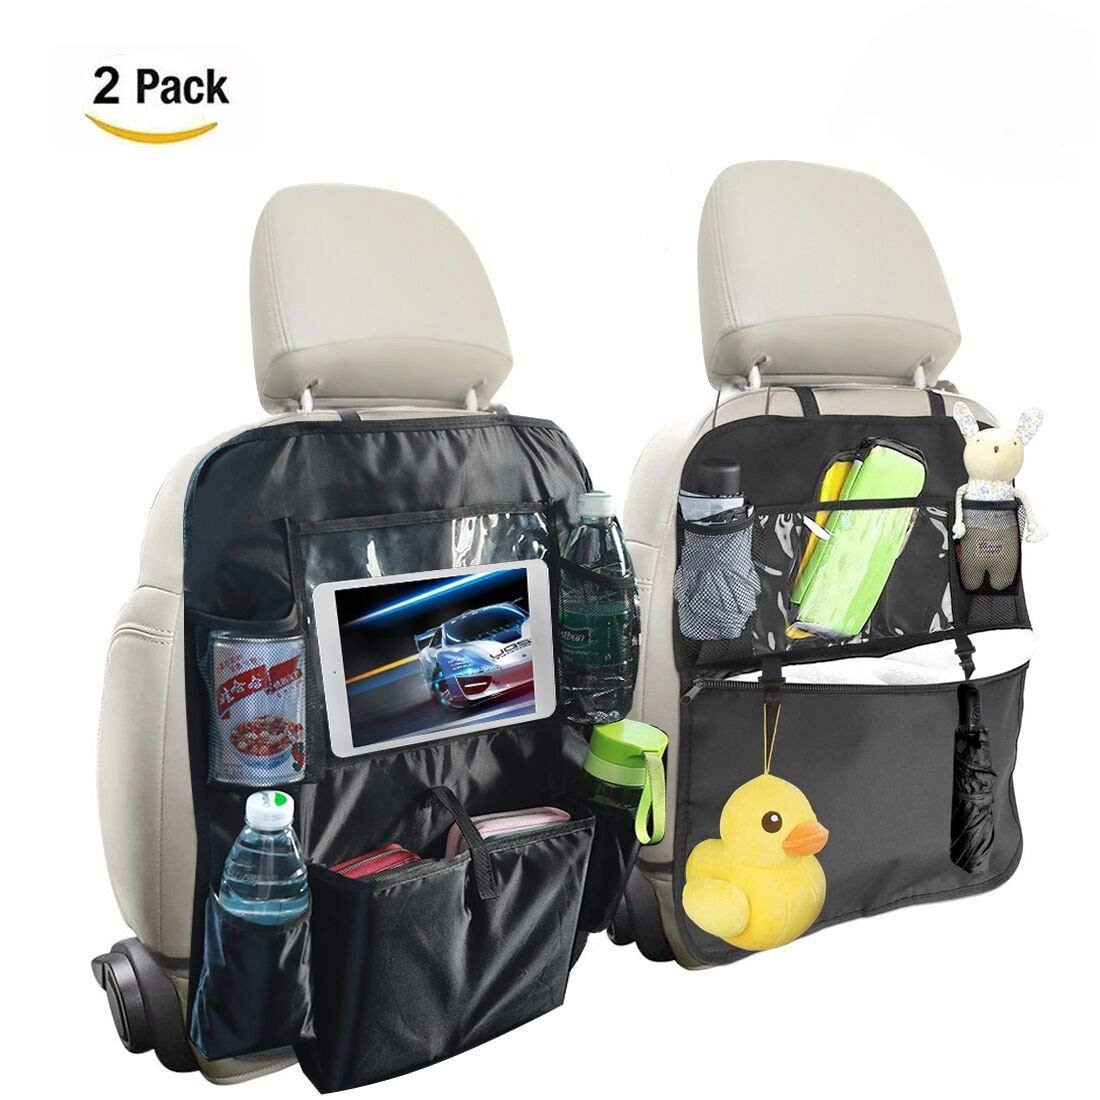 Car Back Seat Protectors for Kids and Toddlers Multi Pocket Waterproof Kick Mats Car Seatback Organizers with Touch Screen Ipad/Tablet Holder 2 Pack (Black)